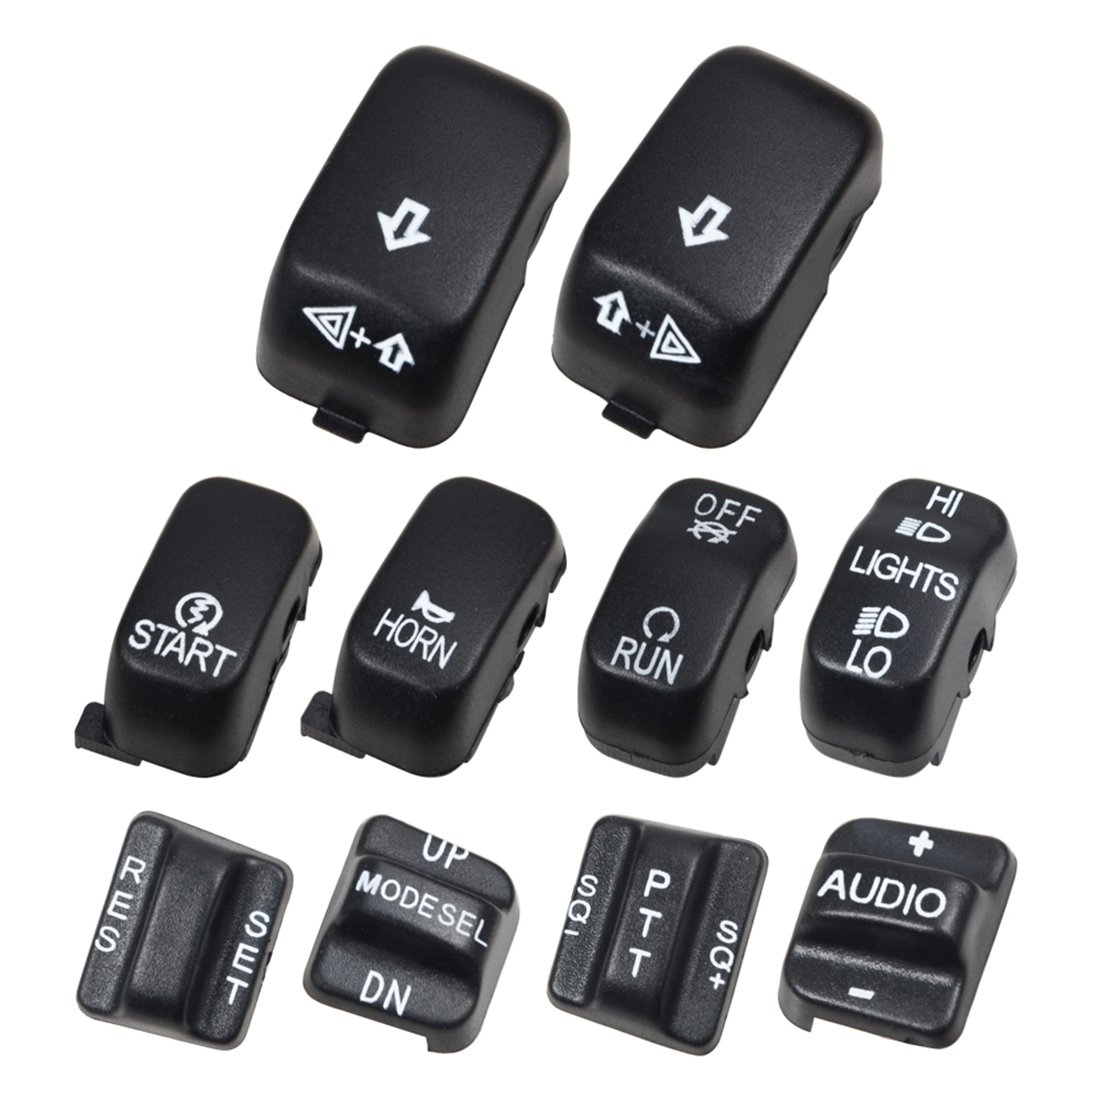 Clipsone Black 10 Pcs Switch Housing Caps Covers for Harley Touring Road Electra Street Glide 1996-2013